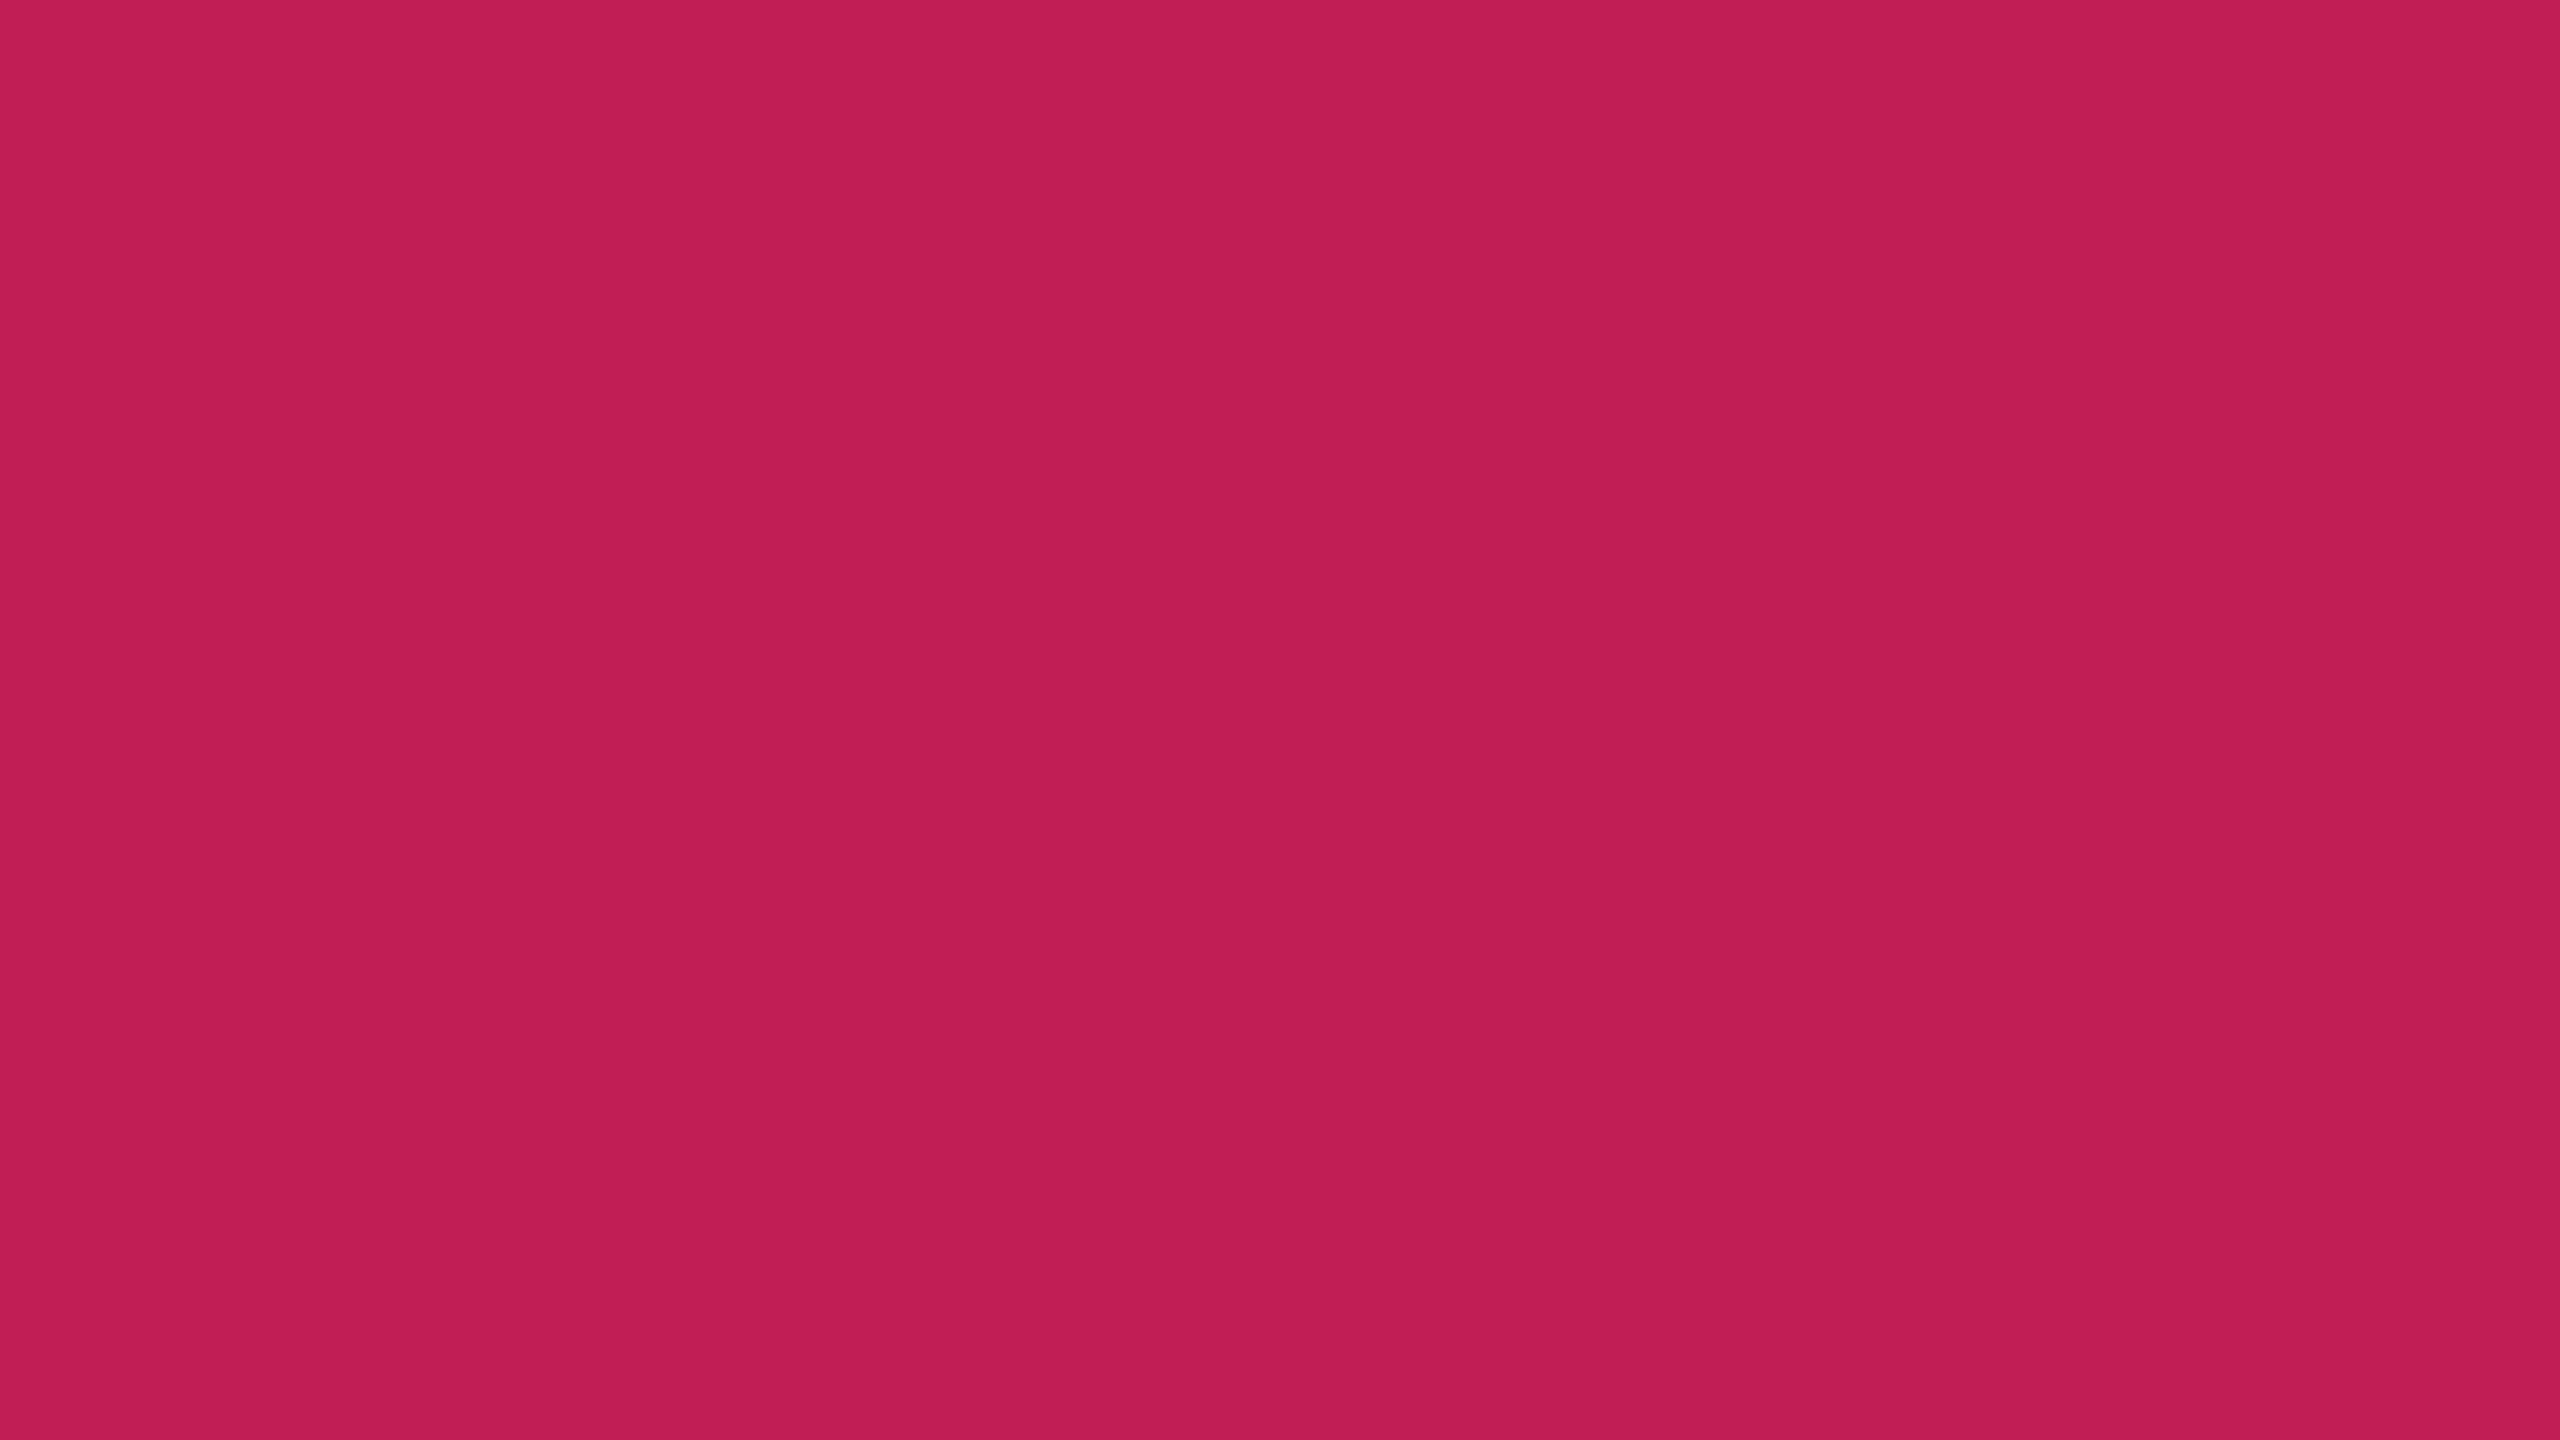 2560x1440 Rose Red Solid Color Background